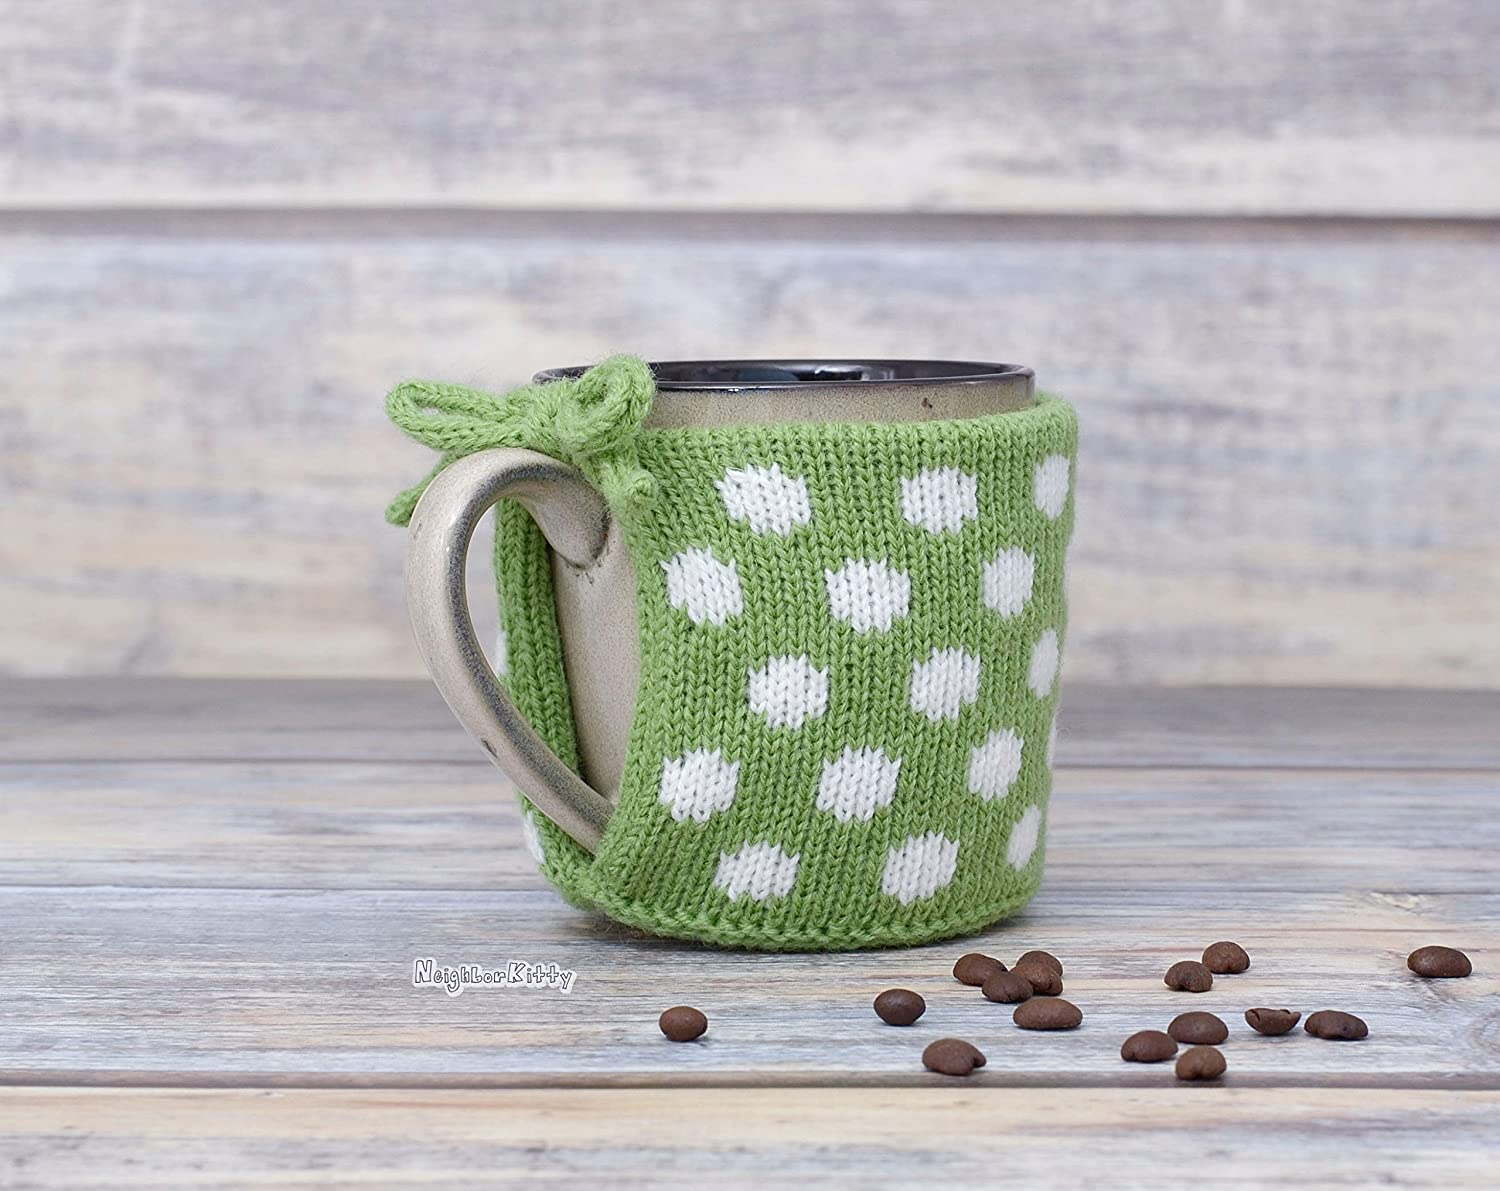 Green Palm Coffee Mug Cozy Knitted Sleeve Mug Sweater Tea Cup Cozy Housewarming Gift Cup Cover Tea Cosies Party Favor